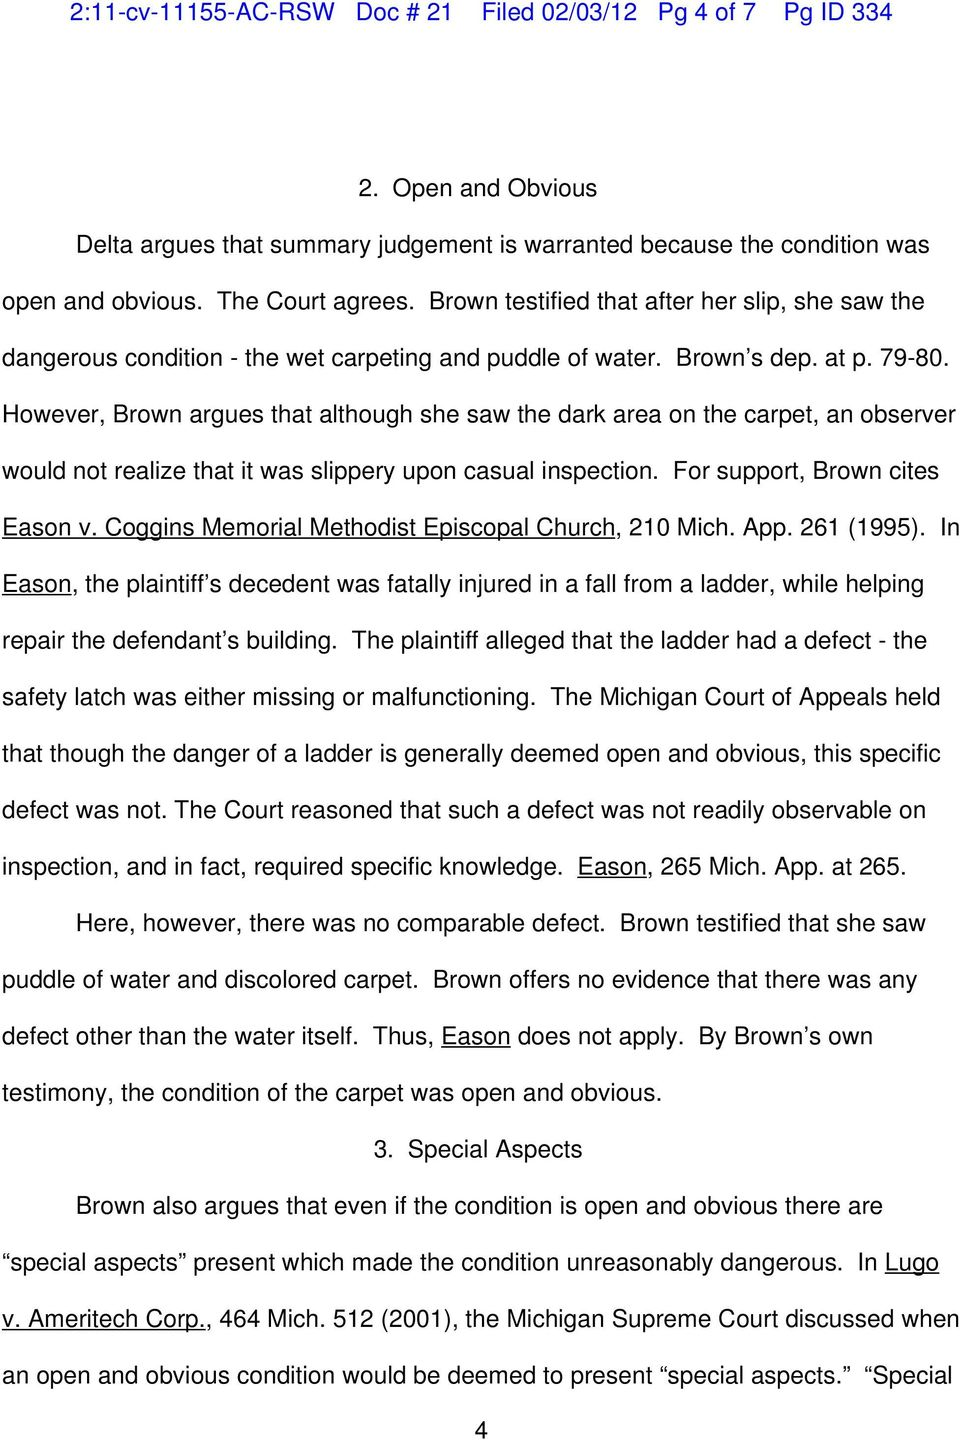 However, Brown argues that although she saw the dark area on the carpet, an observer would not realize that it was slippery upon casual inspection. For support, Brown cites Eason v.